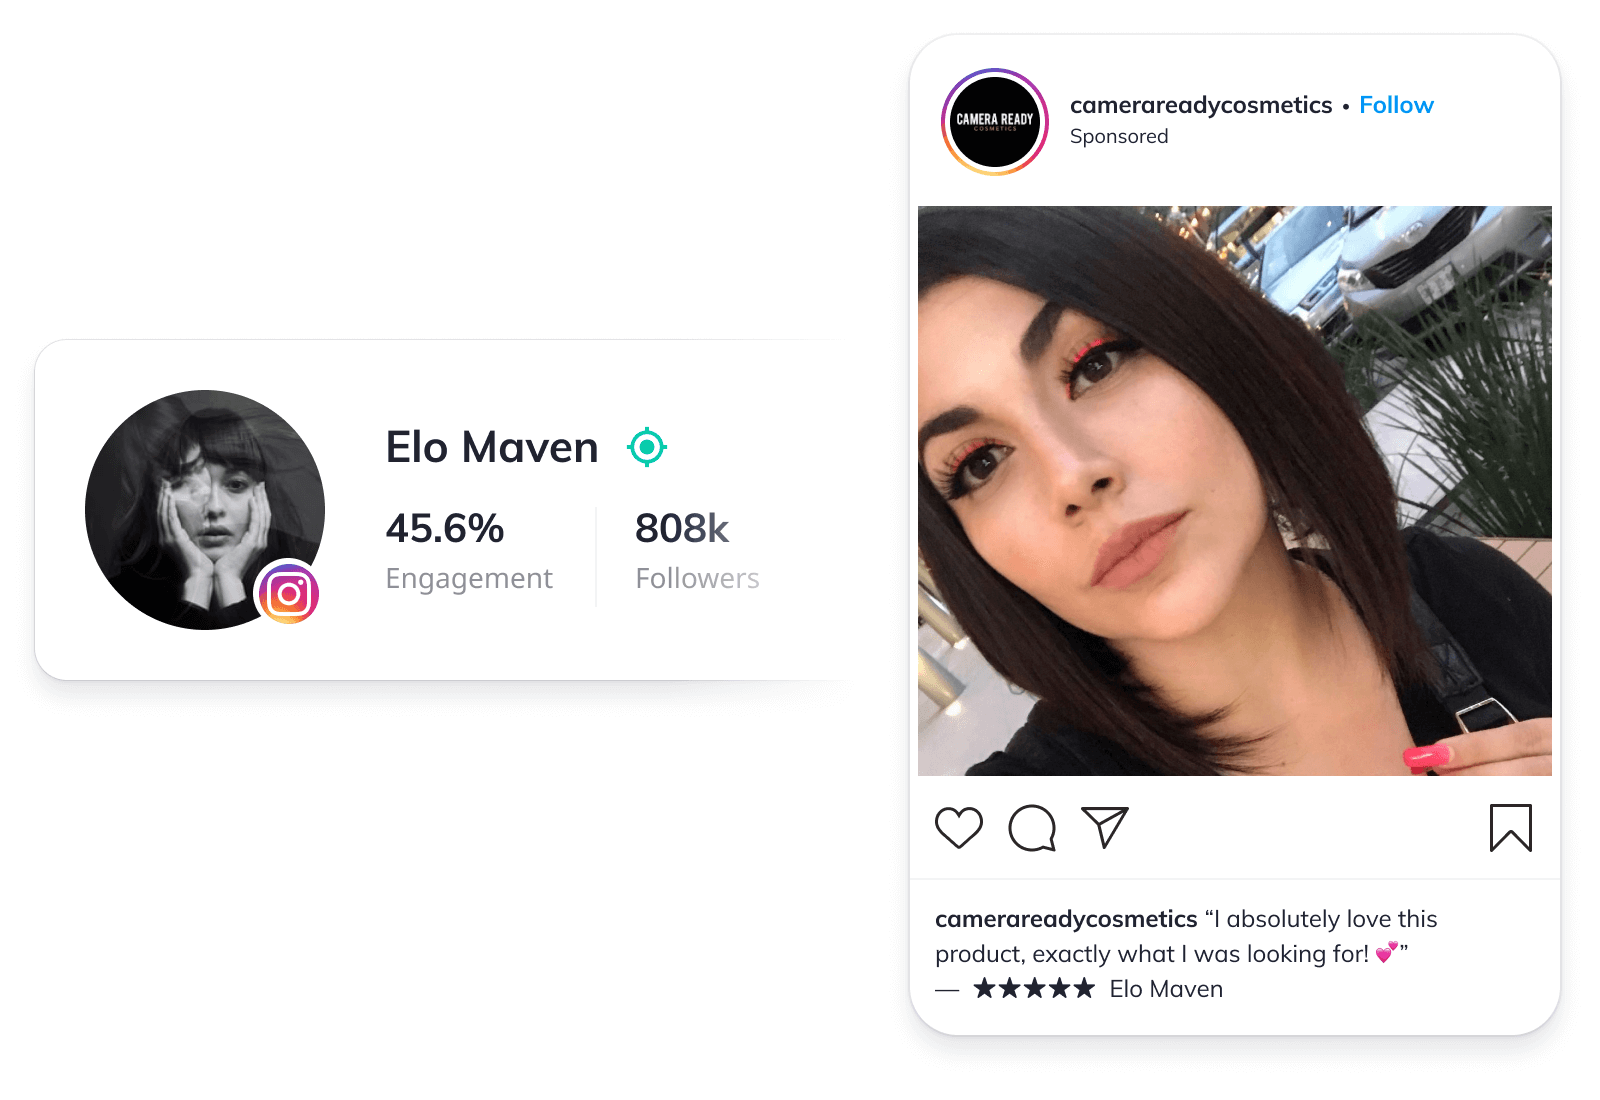 Sponsored post of influencer